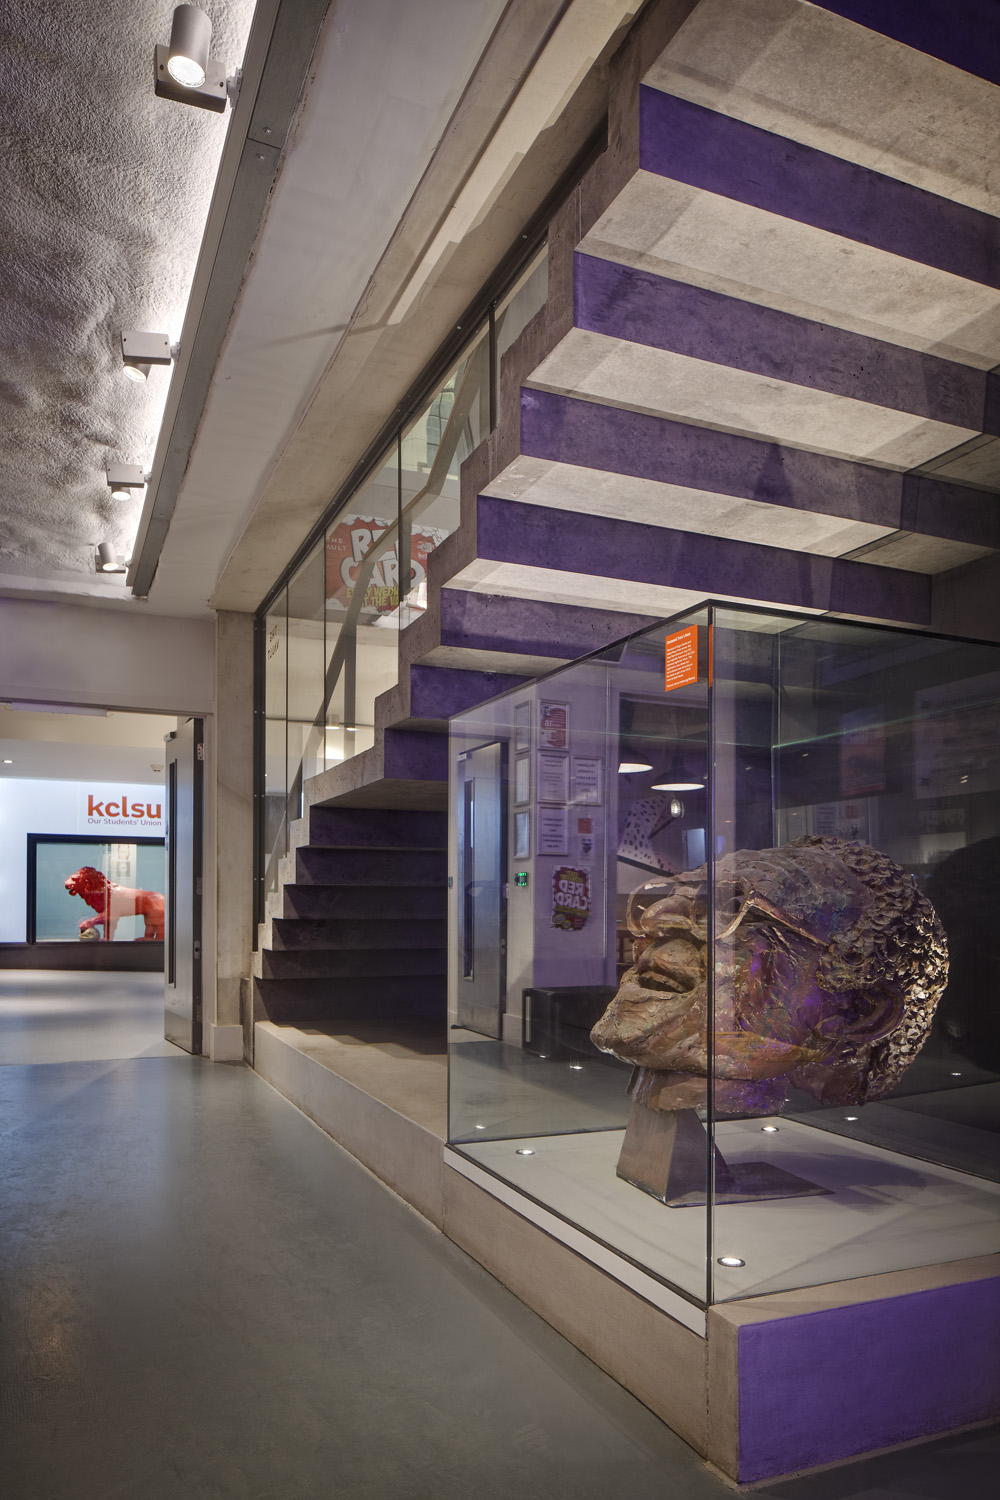 New lighting installations by Hoare Lea at Kings College London Student Union, in Bush House, London, UK.